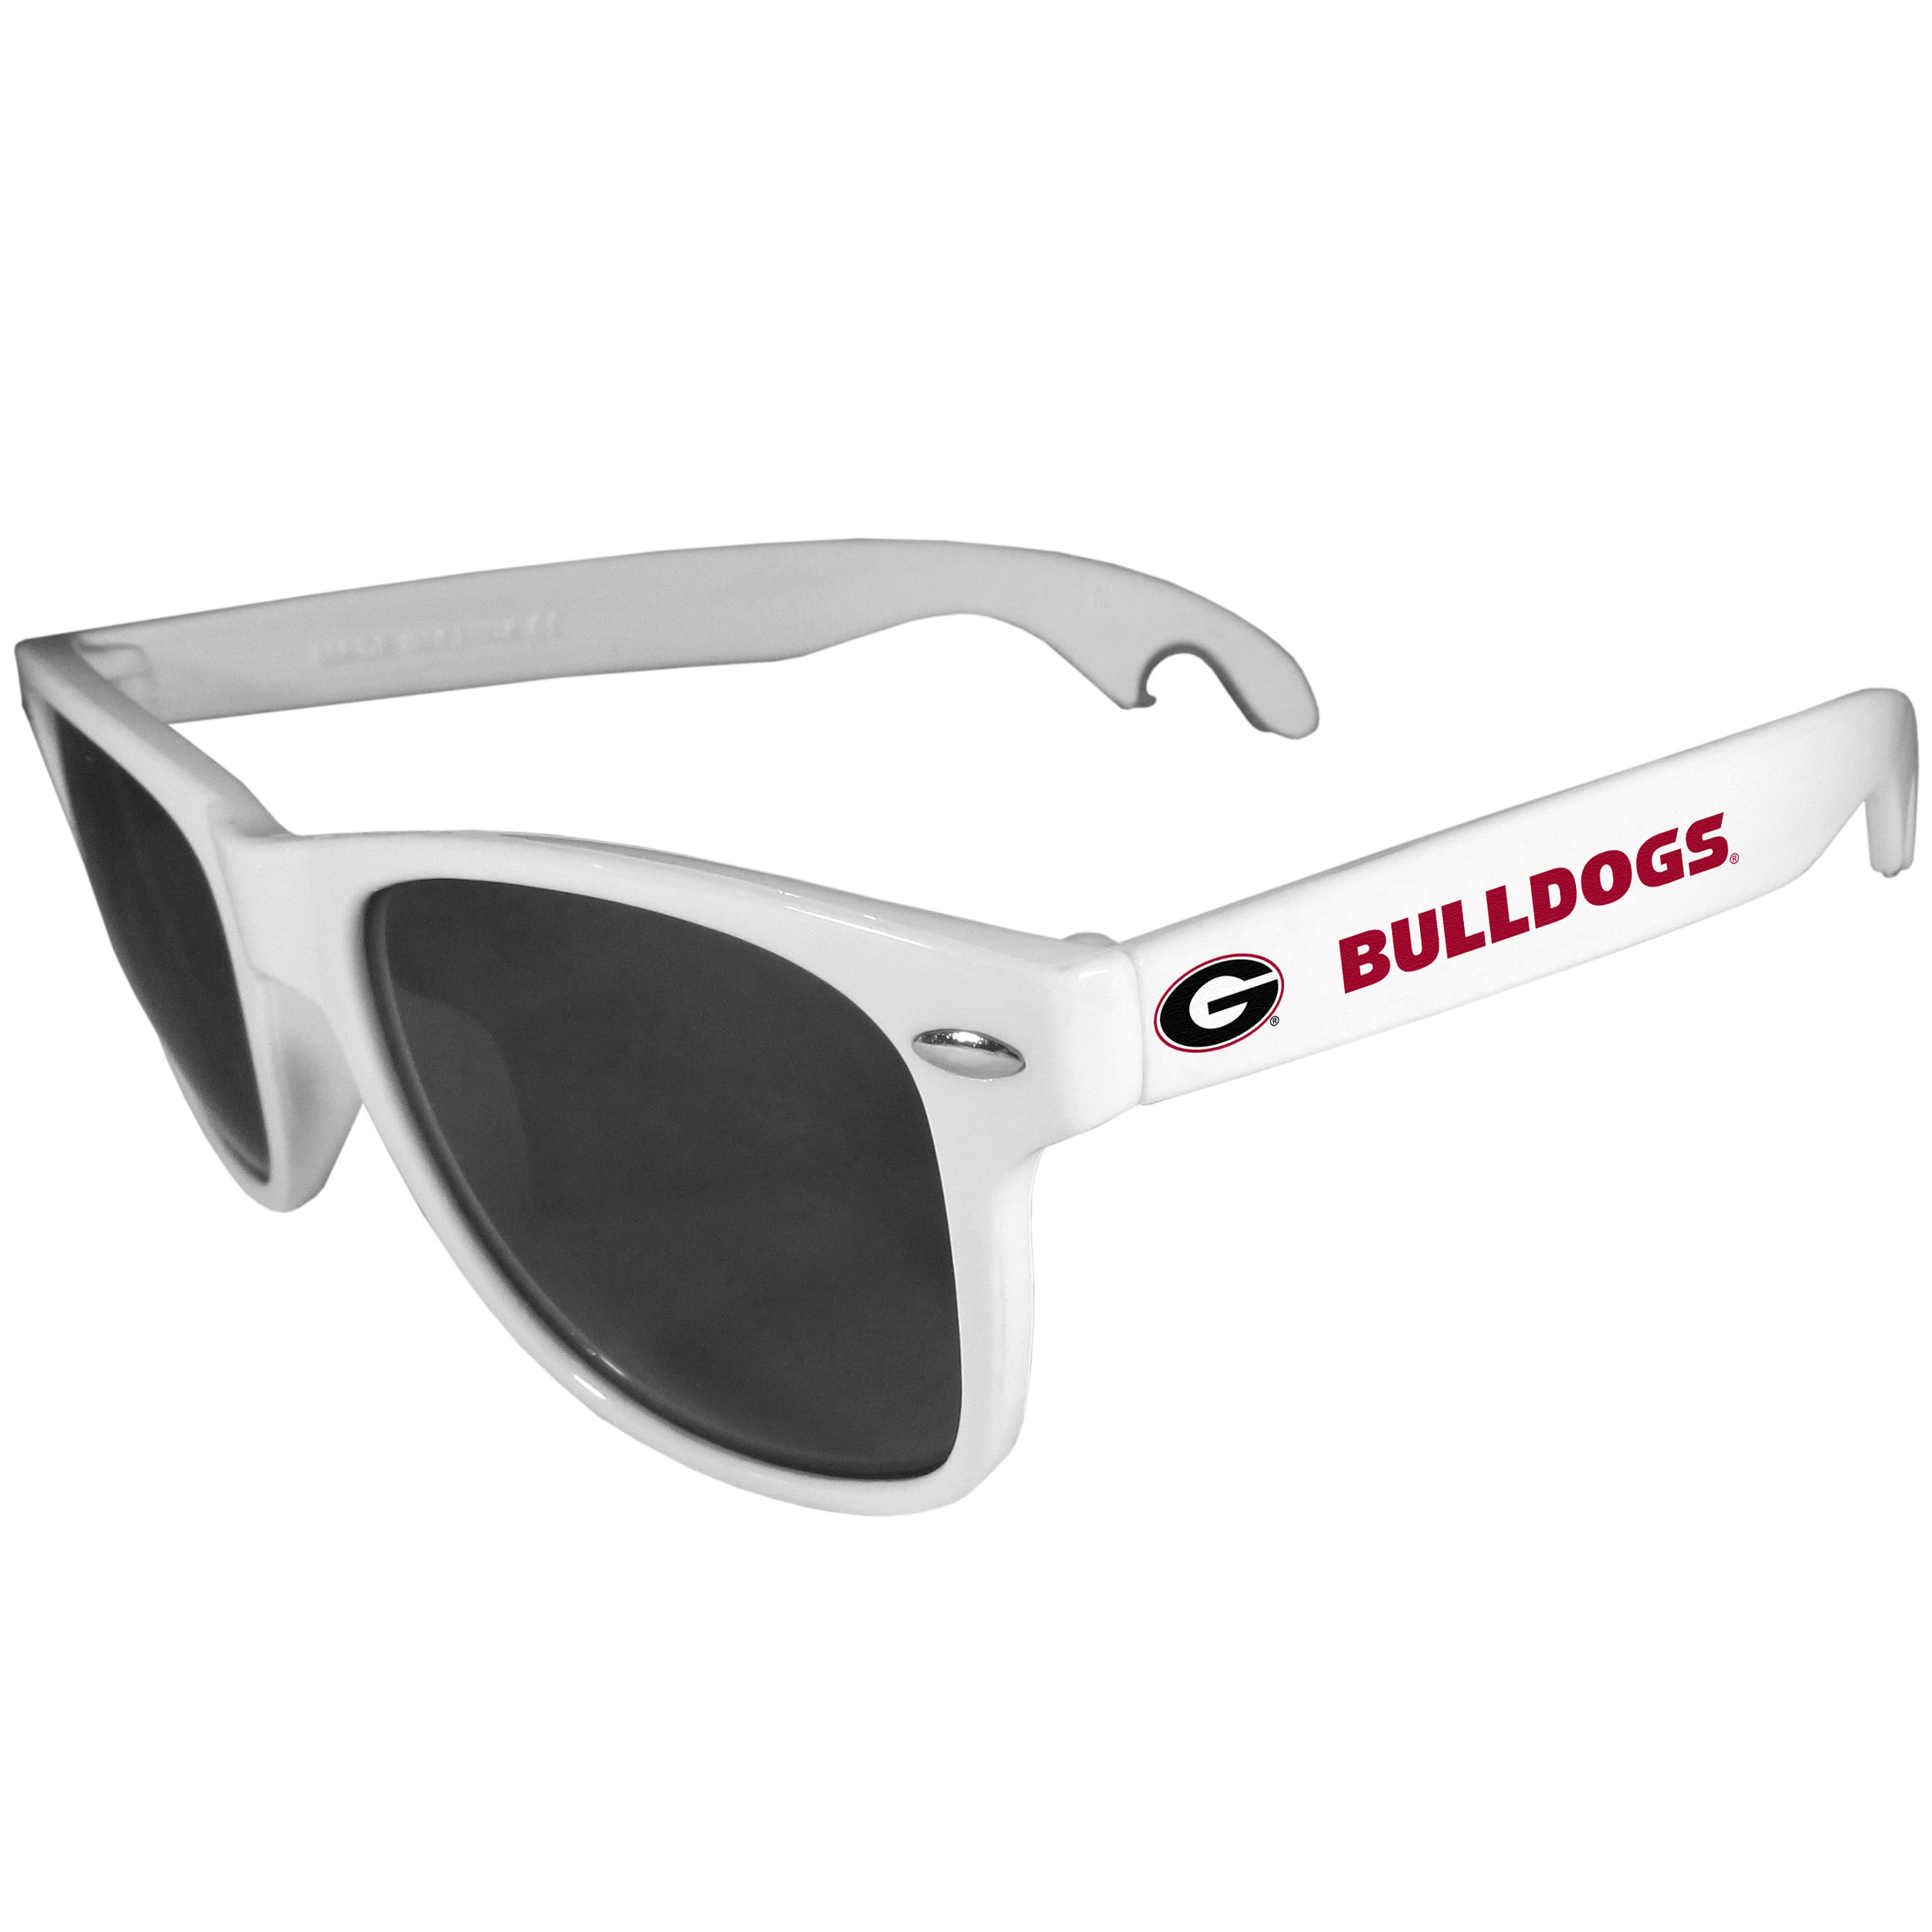 Georgia Bulldogs Beachfarer Bottle Opener Sunglasses, White - Seriously, these sunglasses open bottles! Keep the party going with these amazing Georgia Bulldogs bottle opener sunglasses. The stylish retro frames feature team designs on the arms and functional bottle openers on the end of the arms. Whether you are at the beach or having a backyard BBQ on game day, these shades will keep your eyes protected with 100% UVA/UVB protection and keep you hydrated with the handy bottle opener arms.